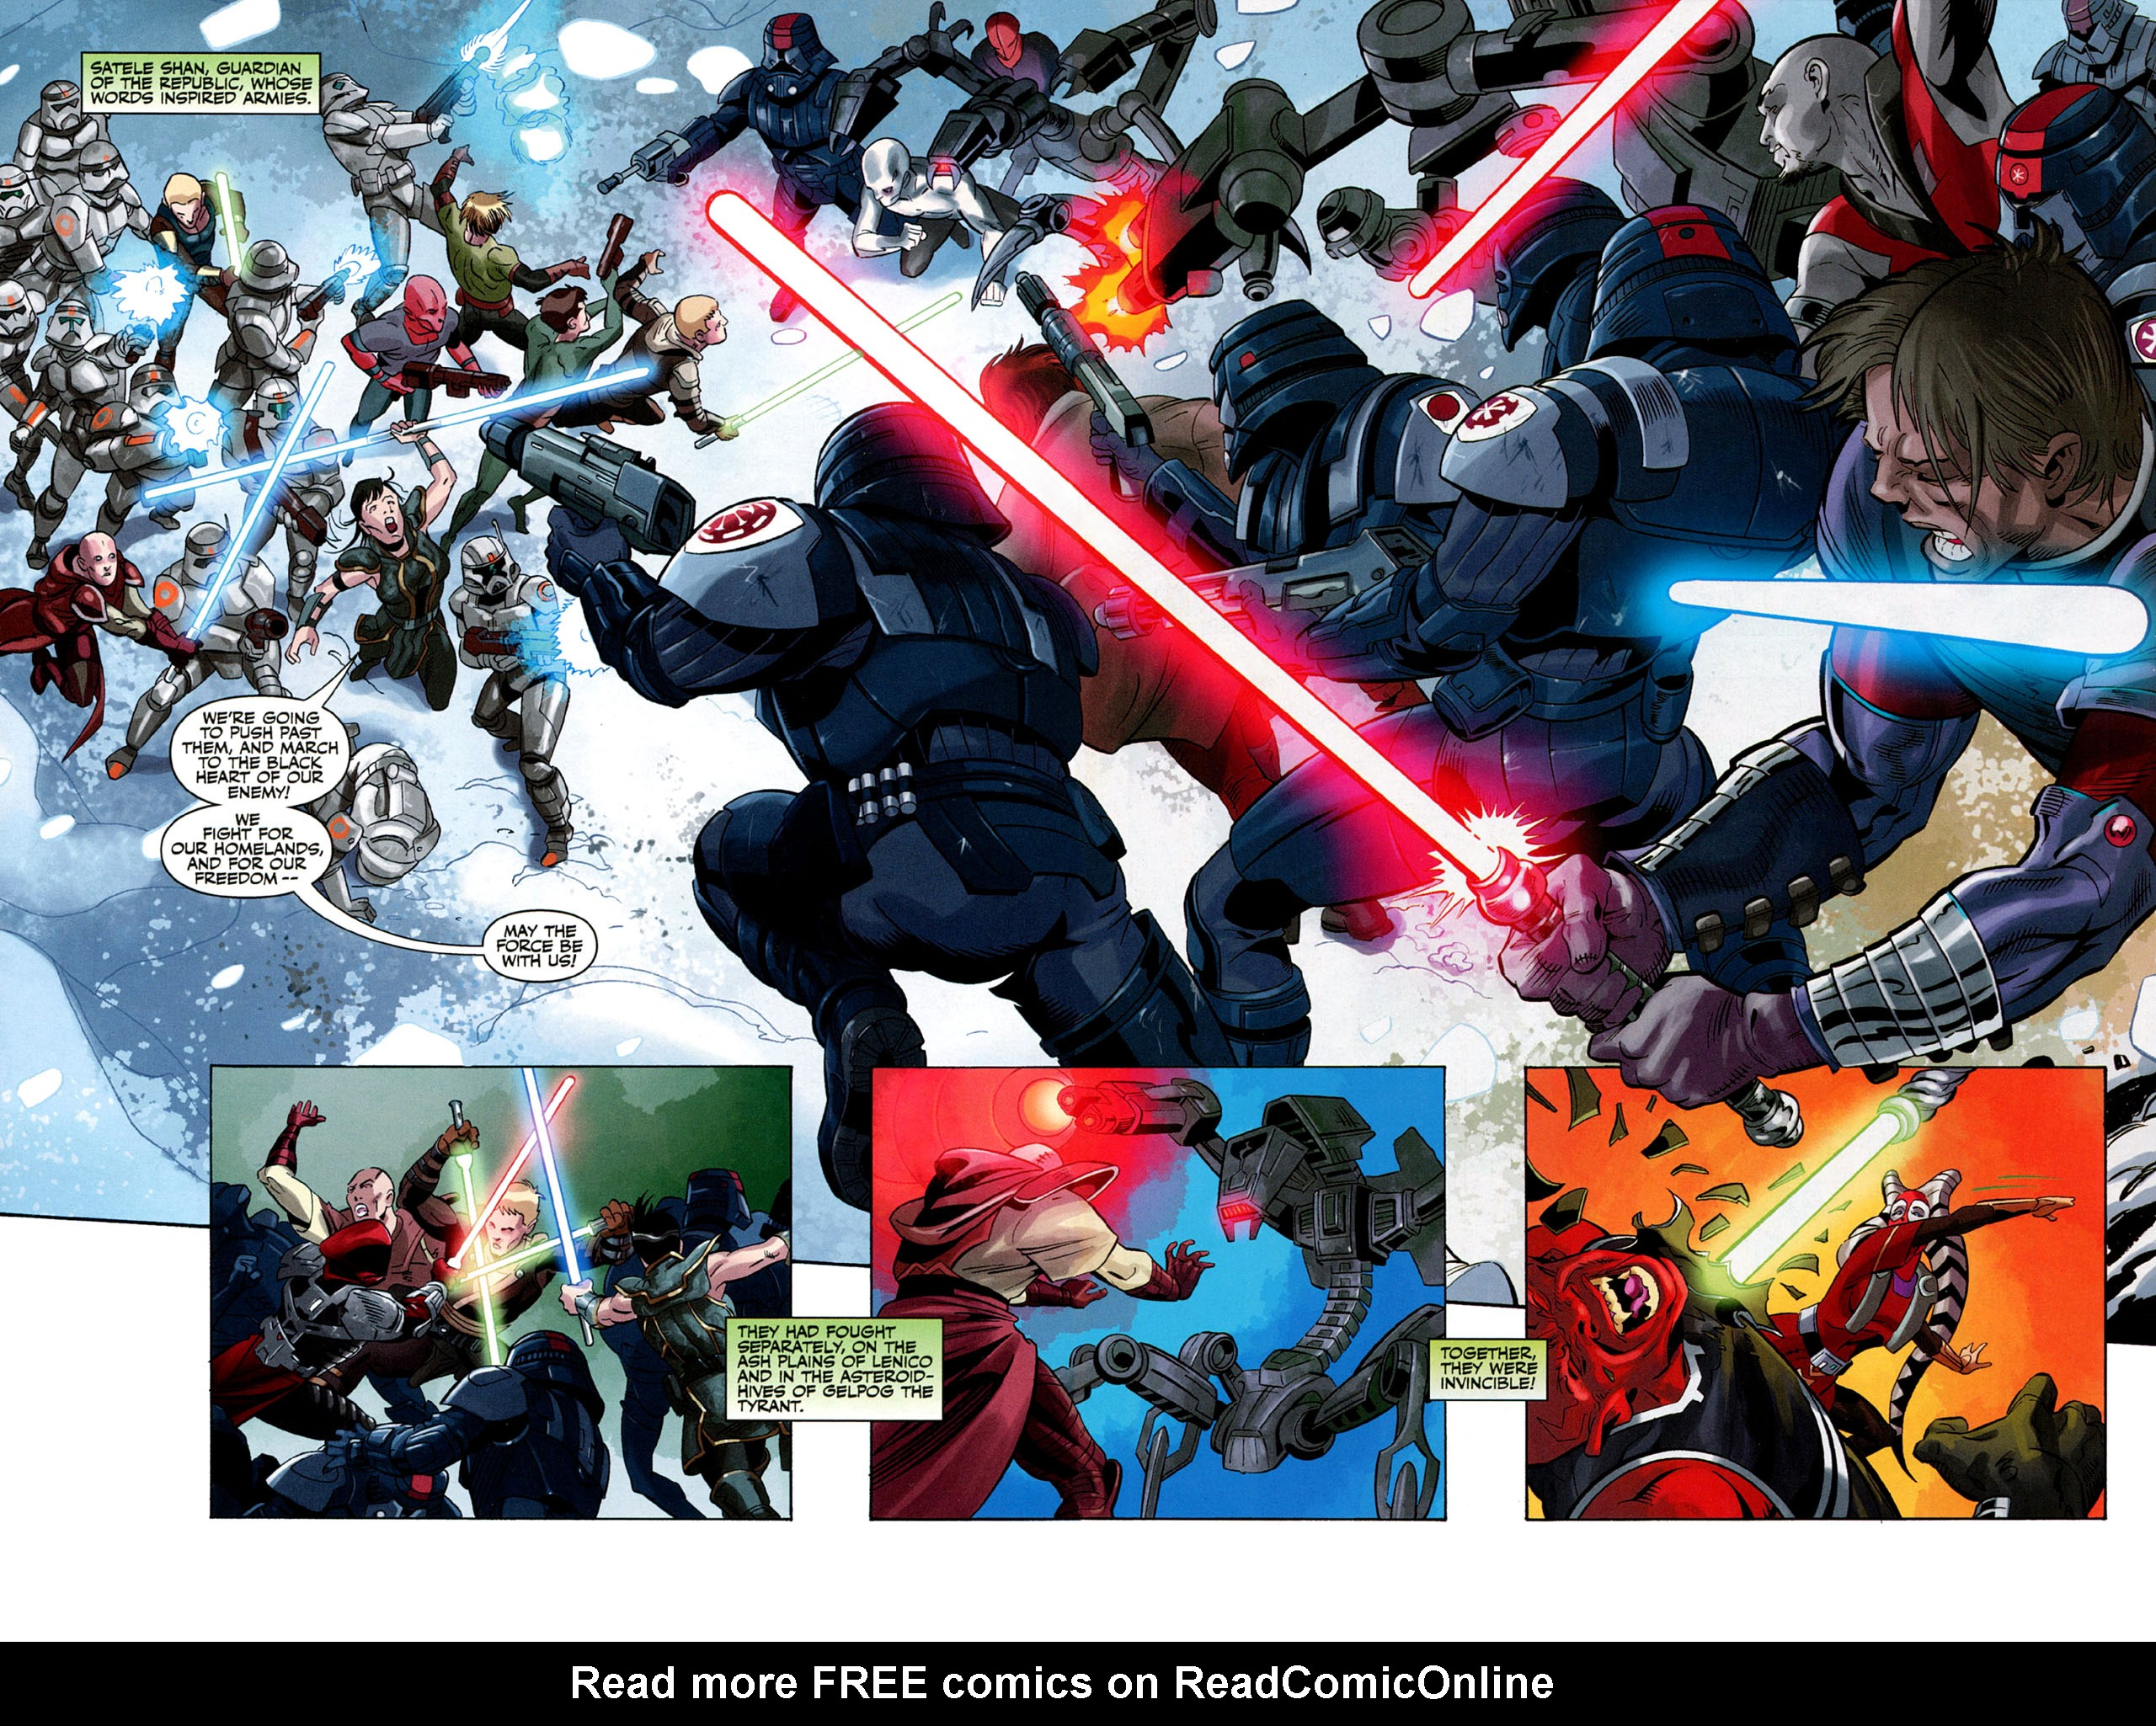 Read online Star Wars: The Old Republic - The Lost Suns comic -  Issue #1 - 4